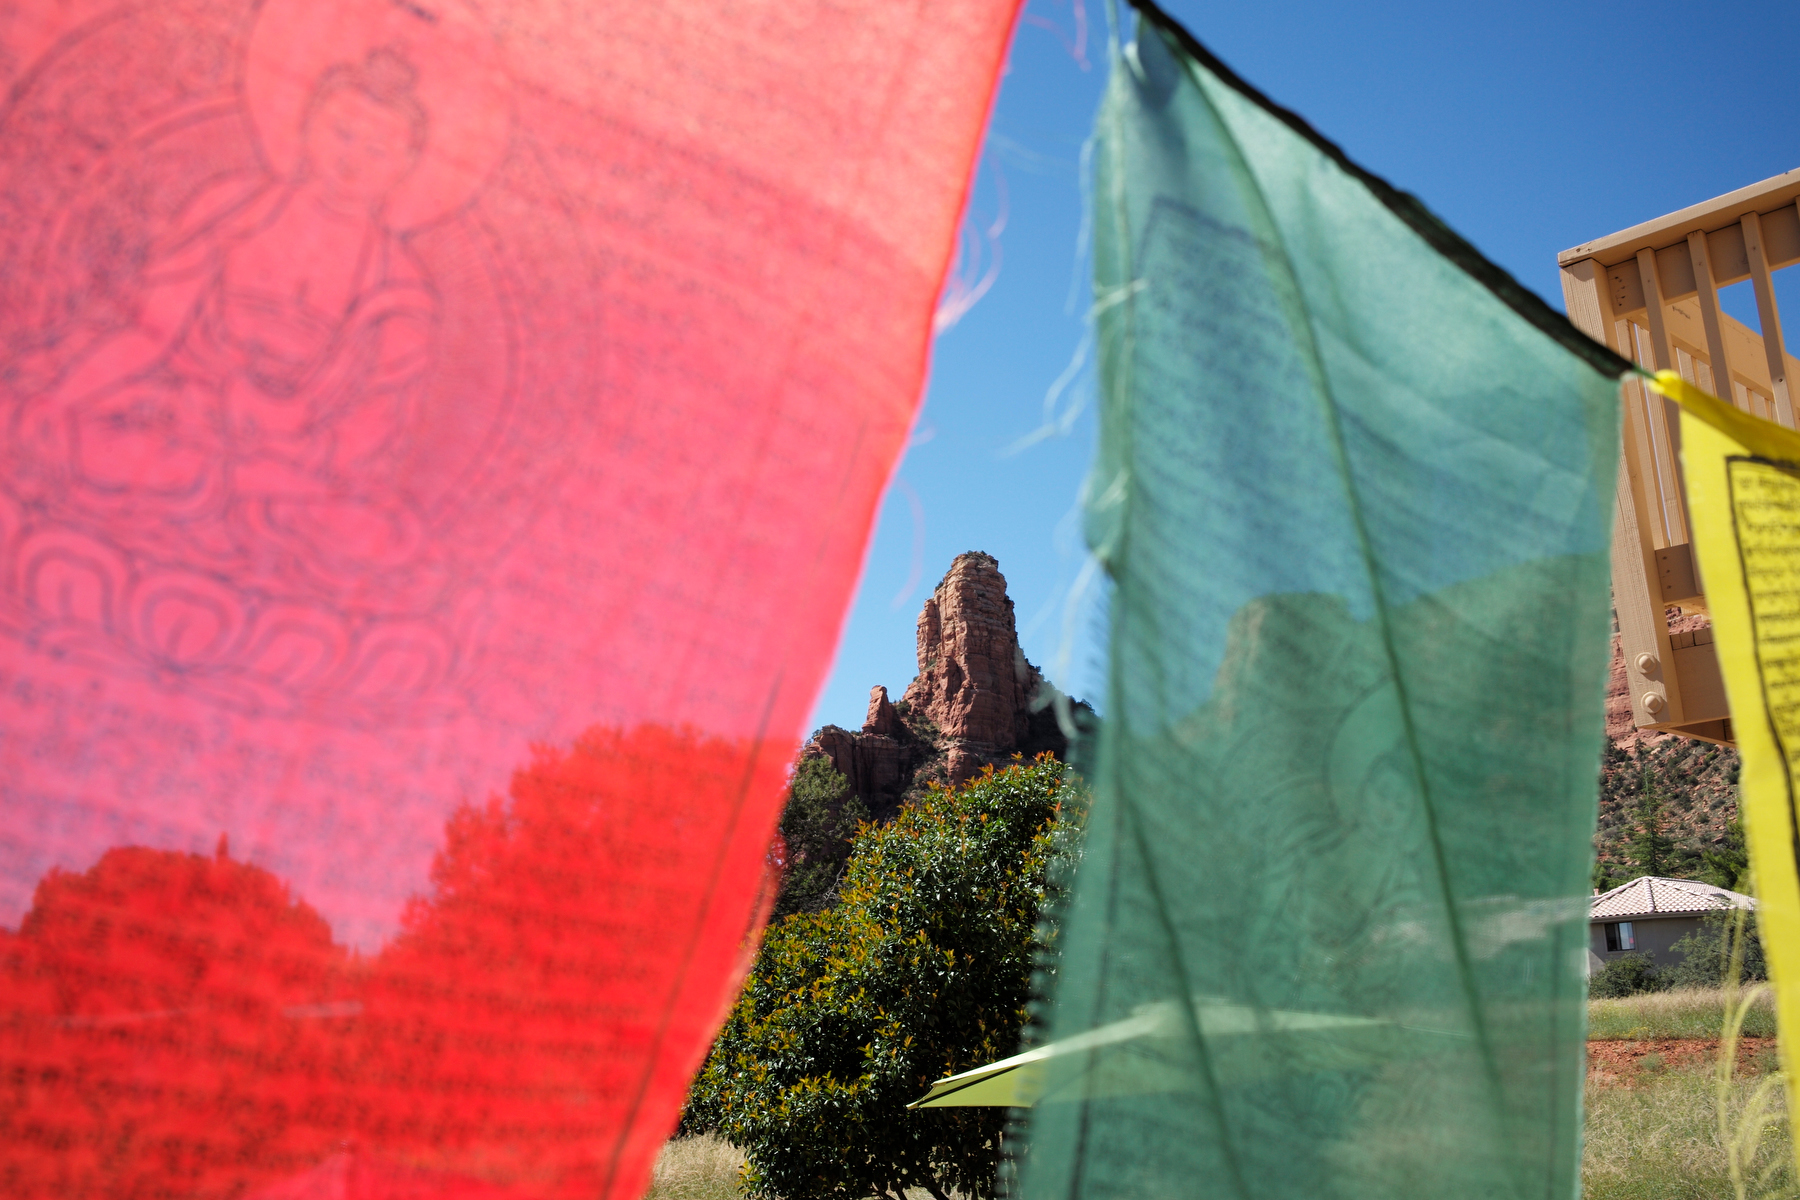 Red and green fablric flags flowing in the wind